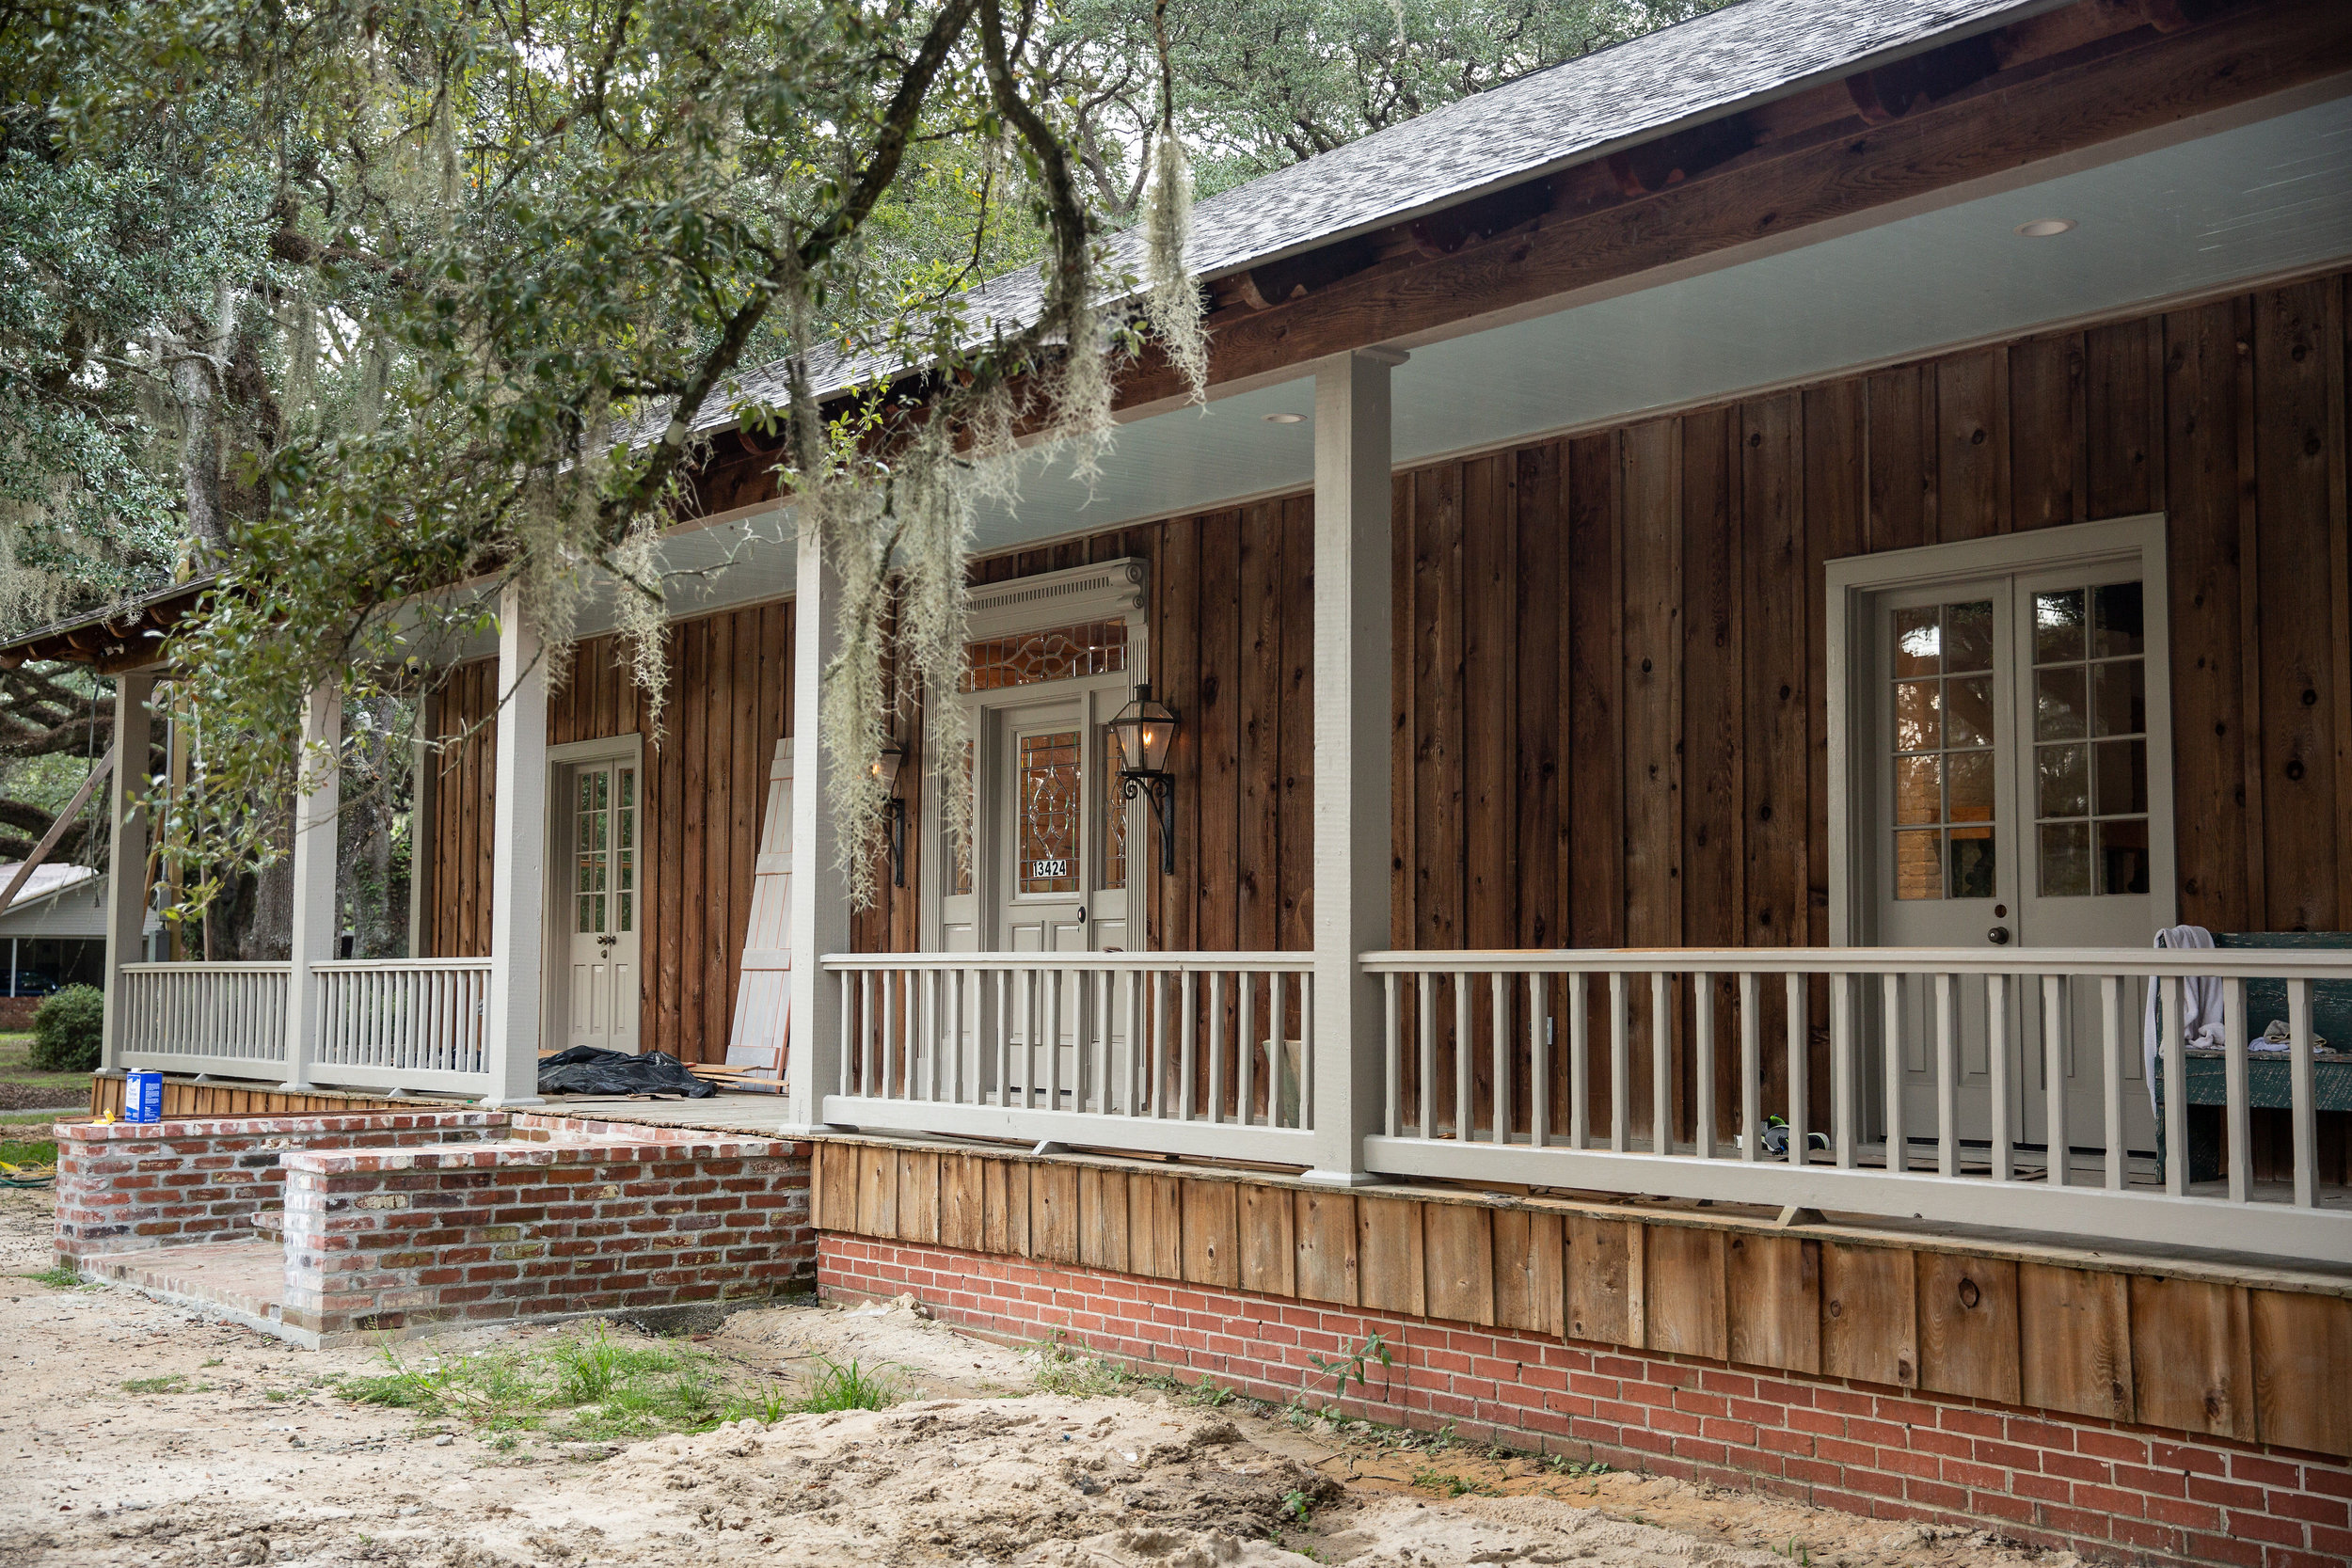 A wide front porch complete with original gas lamps welcomes visitors to sit a spell—to enjoy the fall weather to come.